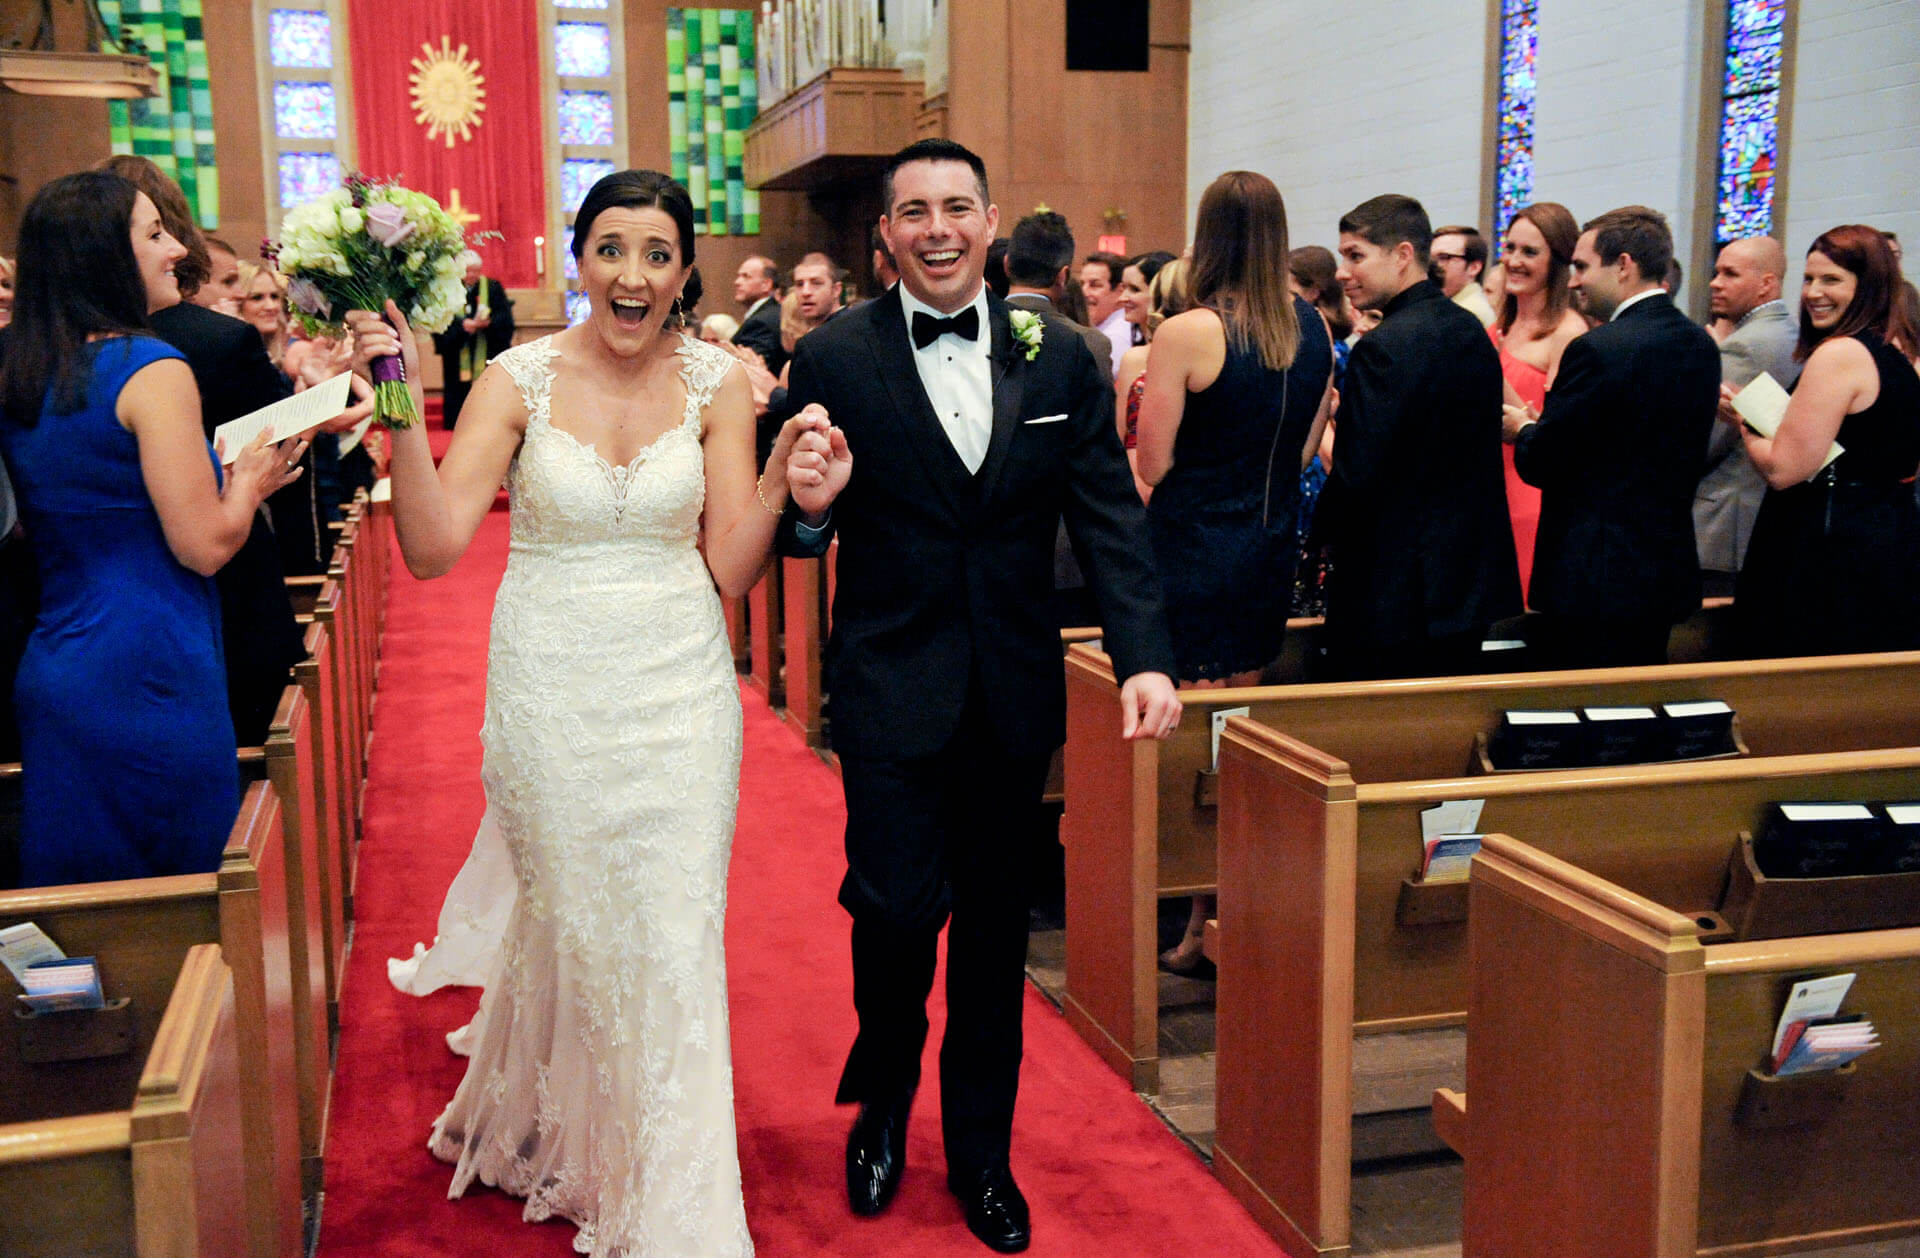 Documentary wedding photo of a bride and groom celebrating their walk back down the aisle at a church in Royal Oak, Michigan.